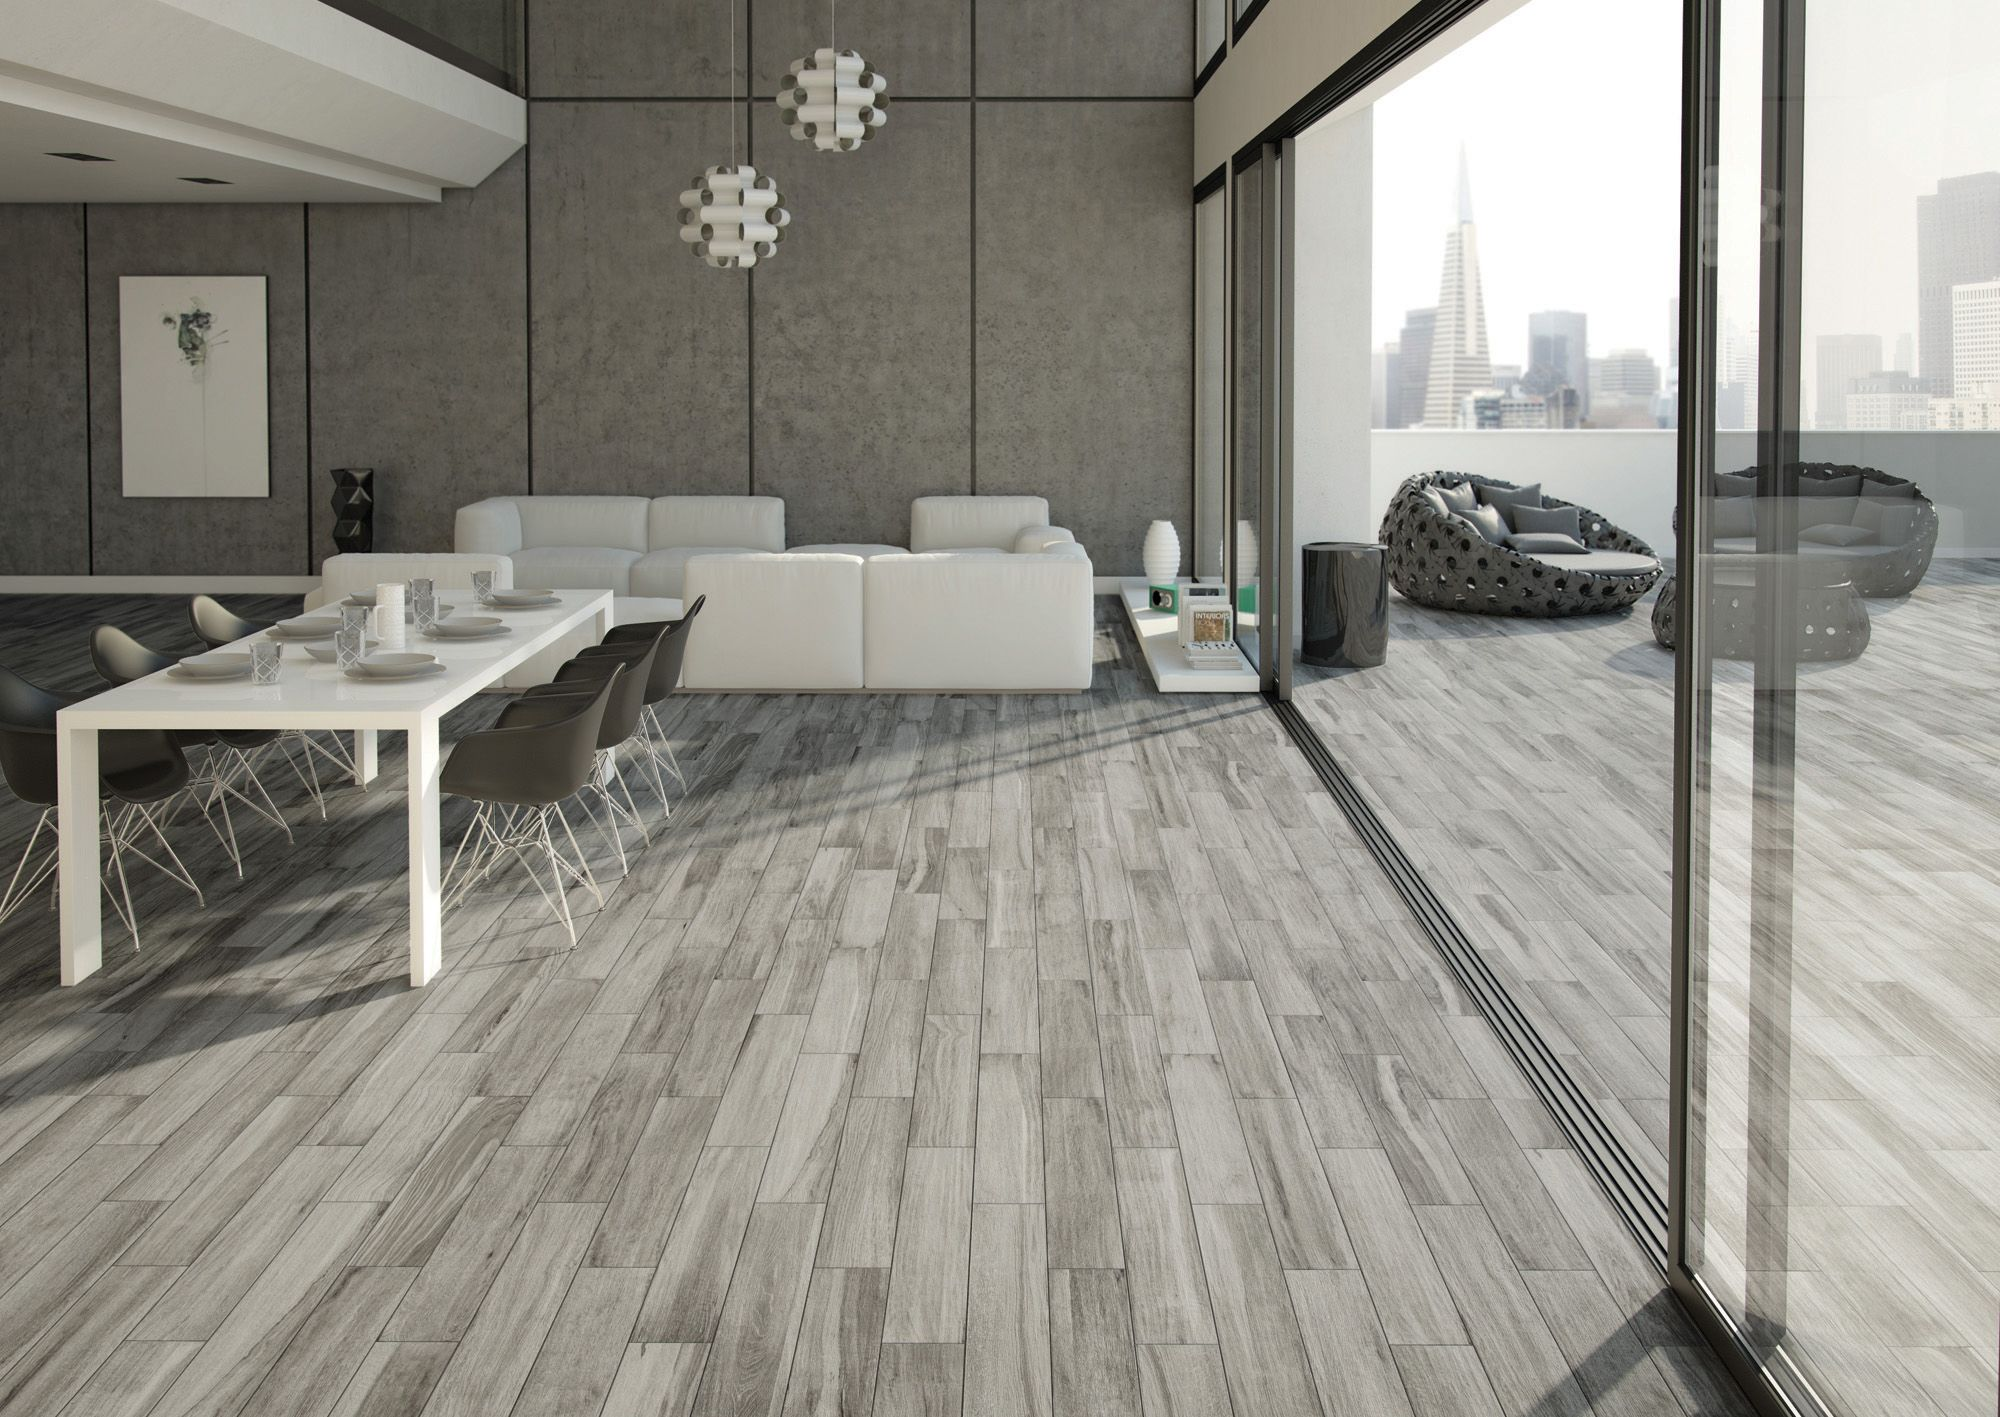 minoli tiles - da silva - grey wood look tiles extremely